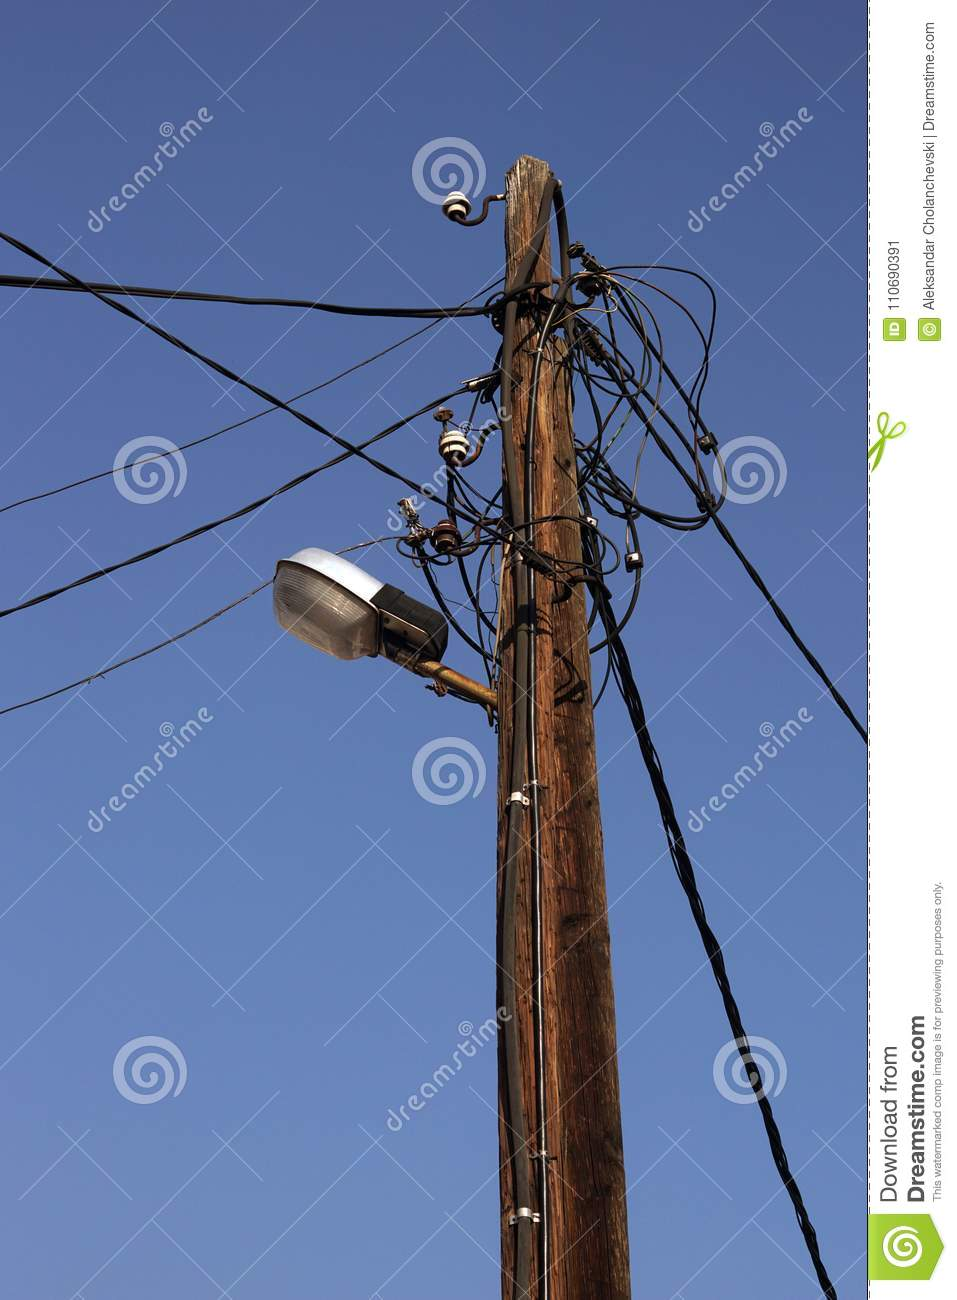 Old Wooden Telegraph Pole Stock Image Of Blue 110690391 Wiring A Lamp